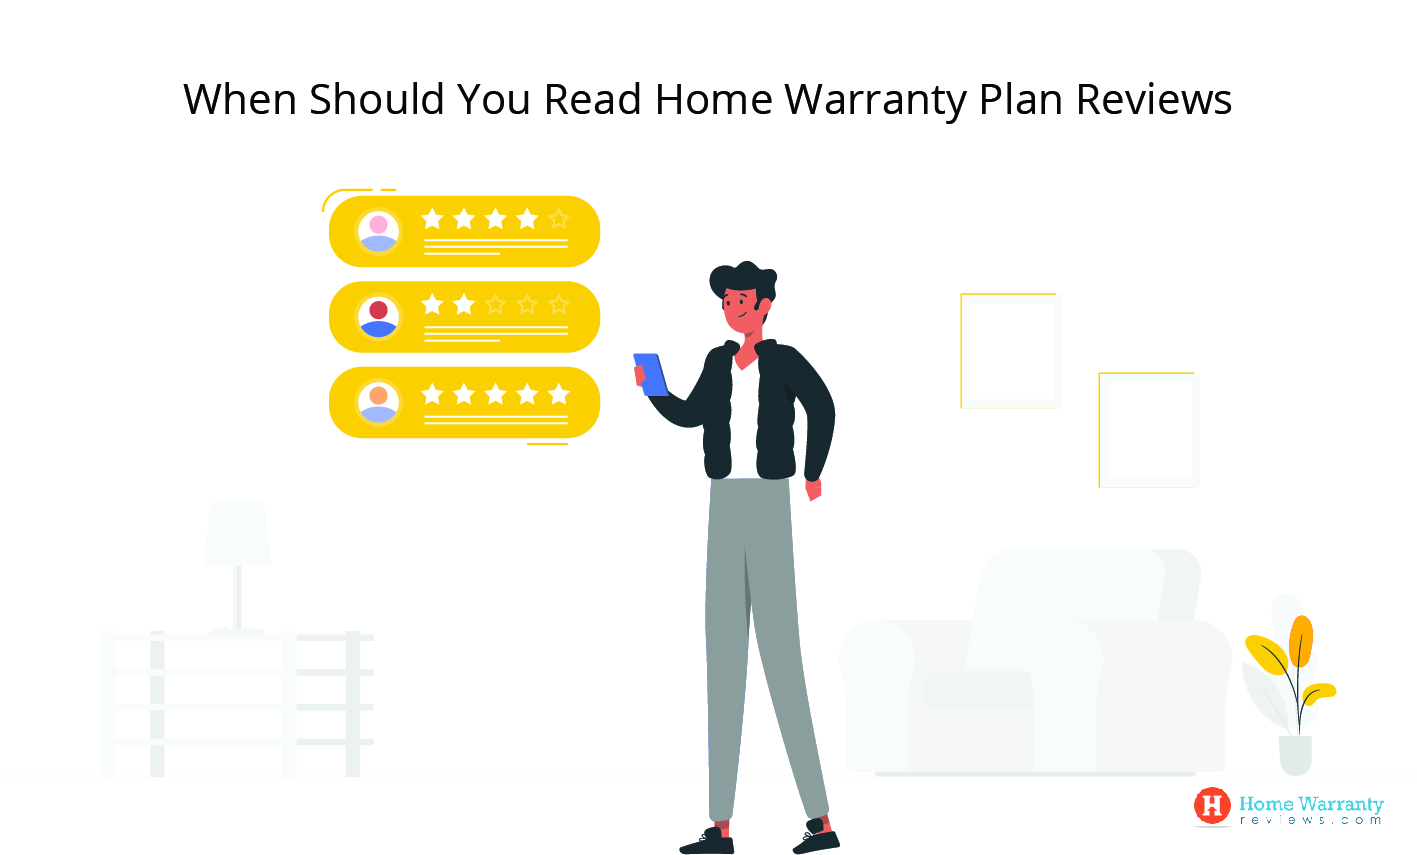 rc_thumb When Should You Read Home Warranty Plan Reviews-01